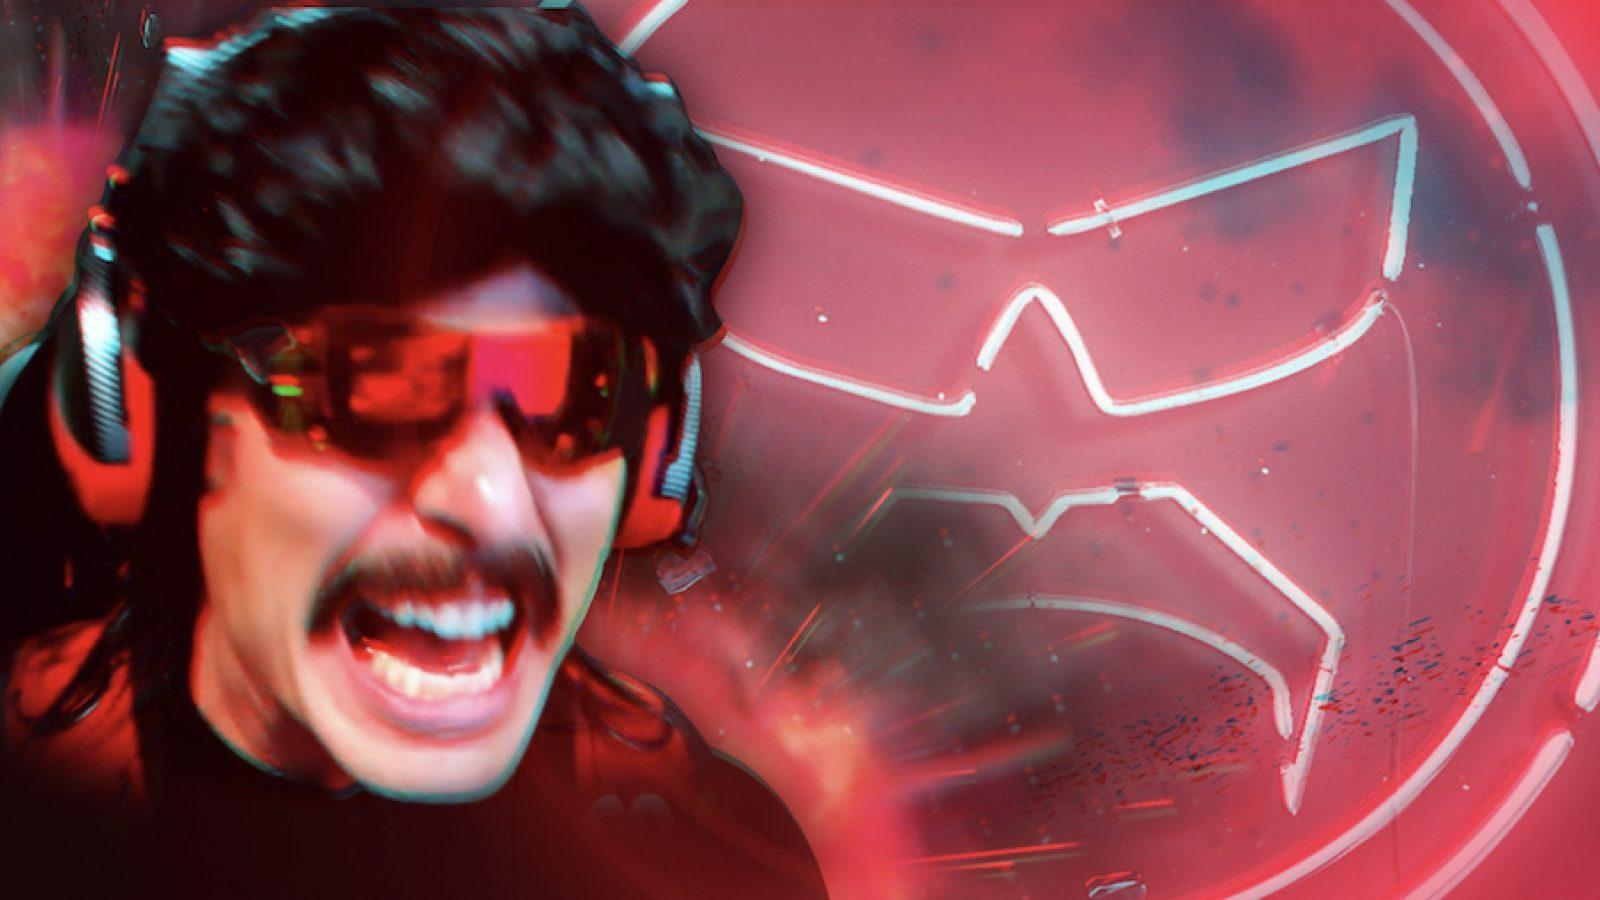 Dr Disrespect - Twitch